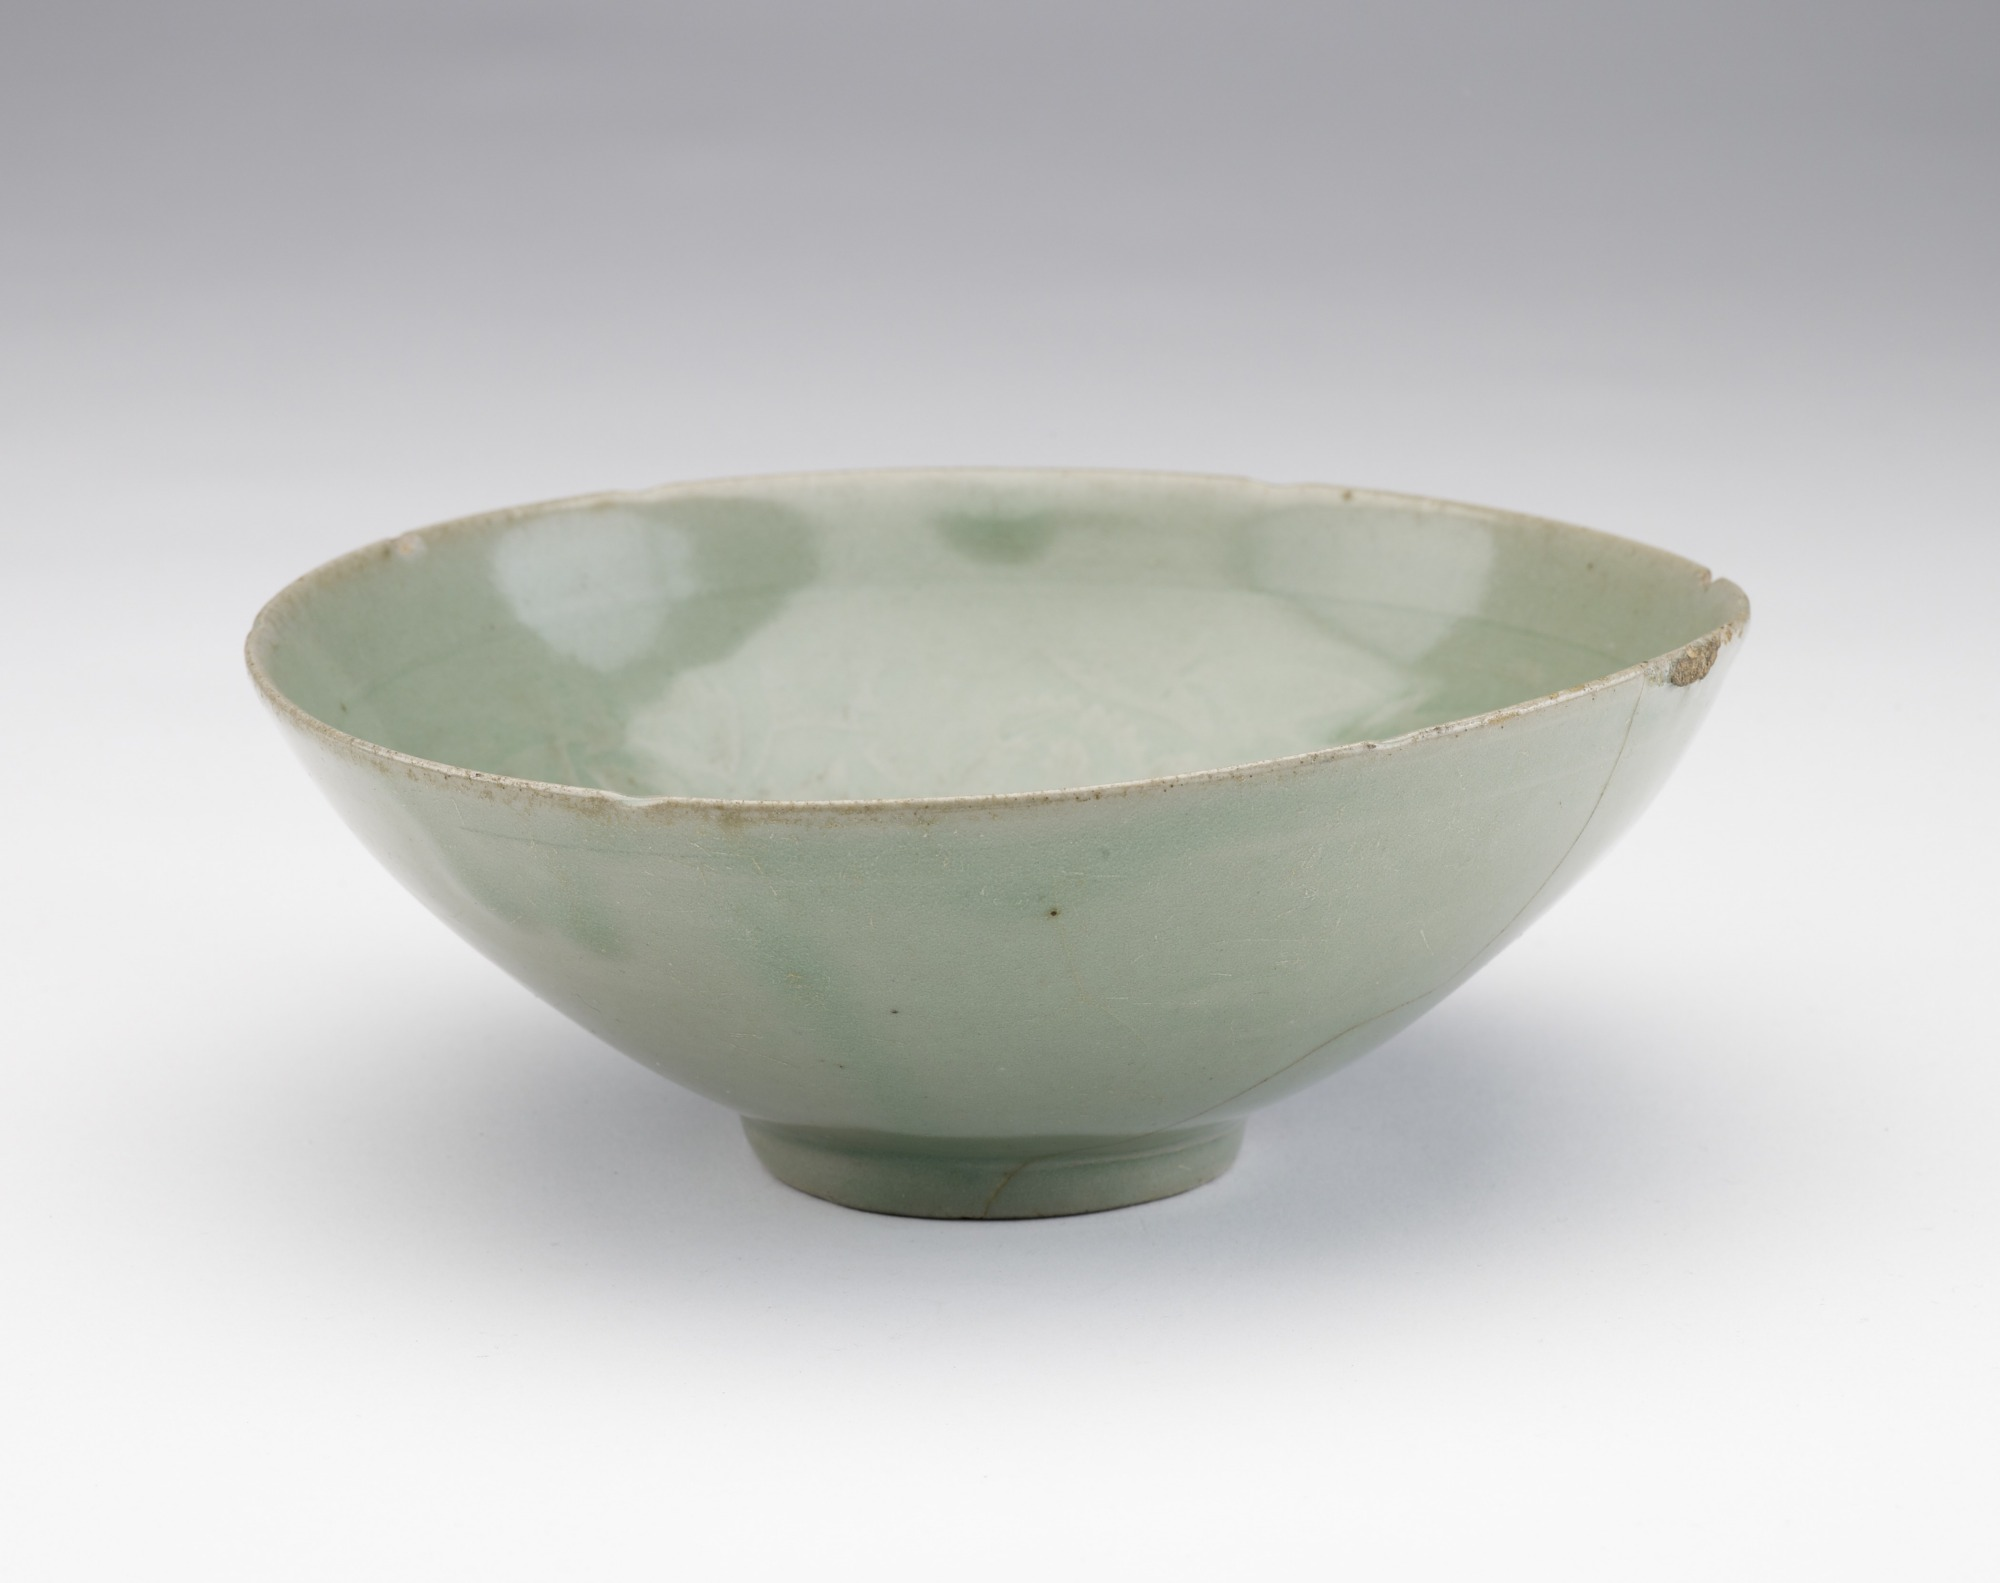 Bowl with molded and incised design of peony blossoms, profile